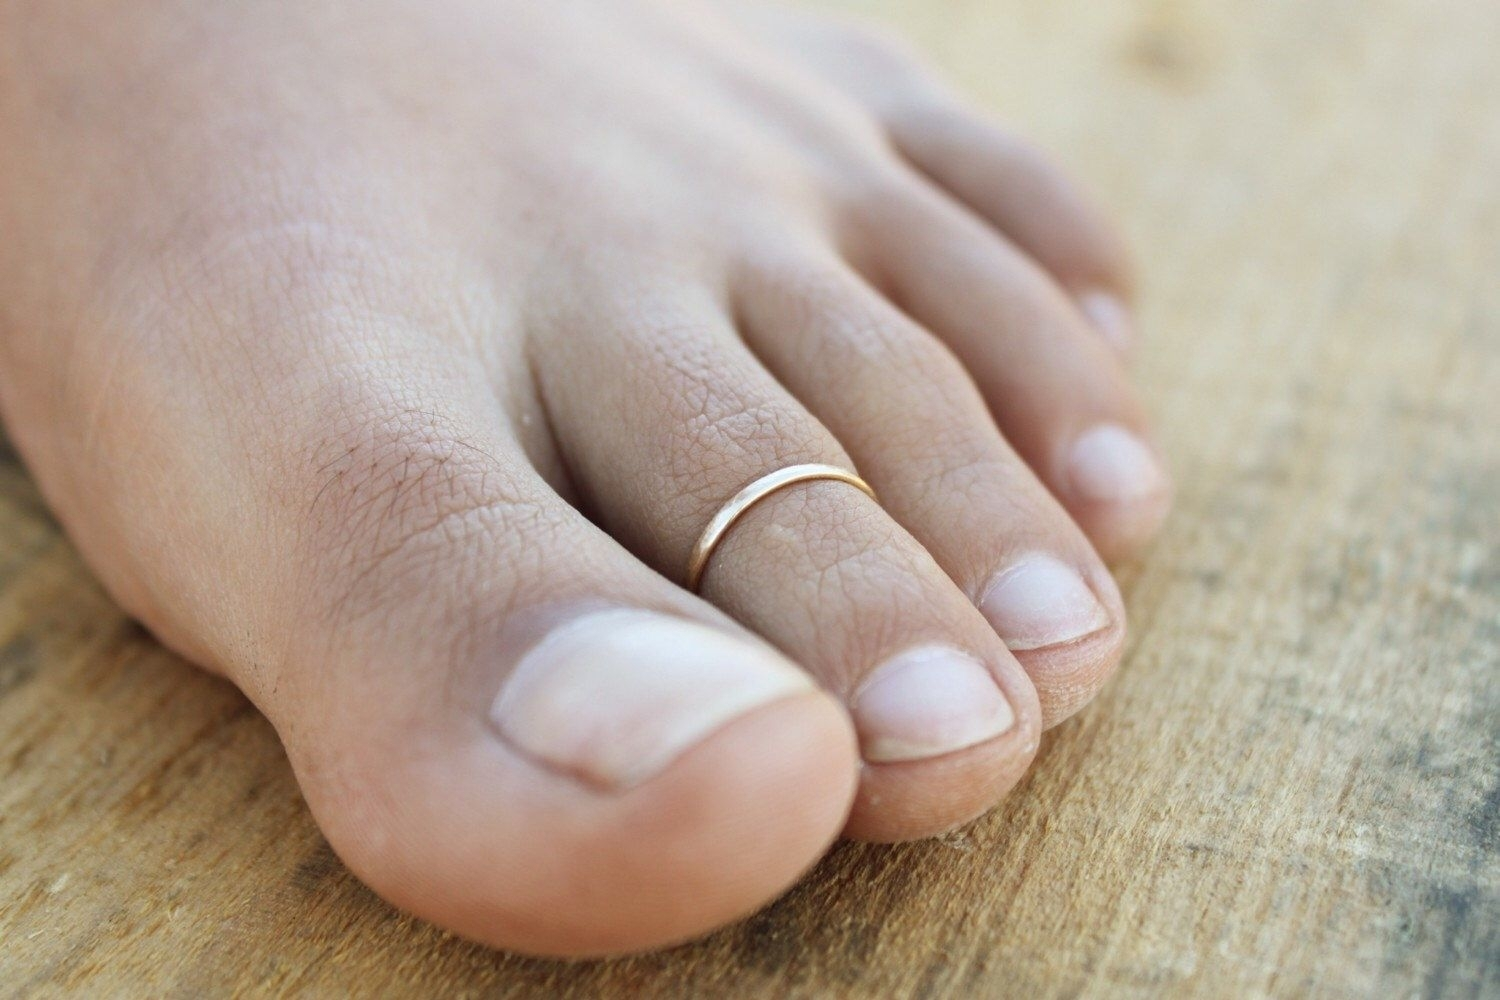 Thin Lightly Hammered Toe Ring – Available In Gold, Rose Gold, And Within Most Popular Rose Gold Toe Rings (Gallery 7 of 15)